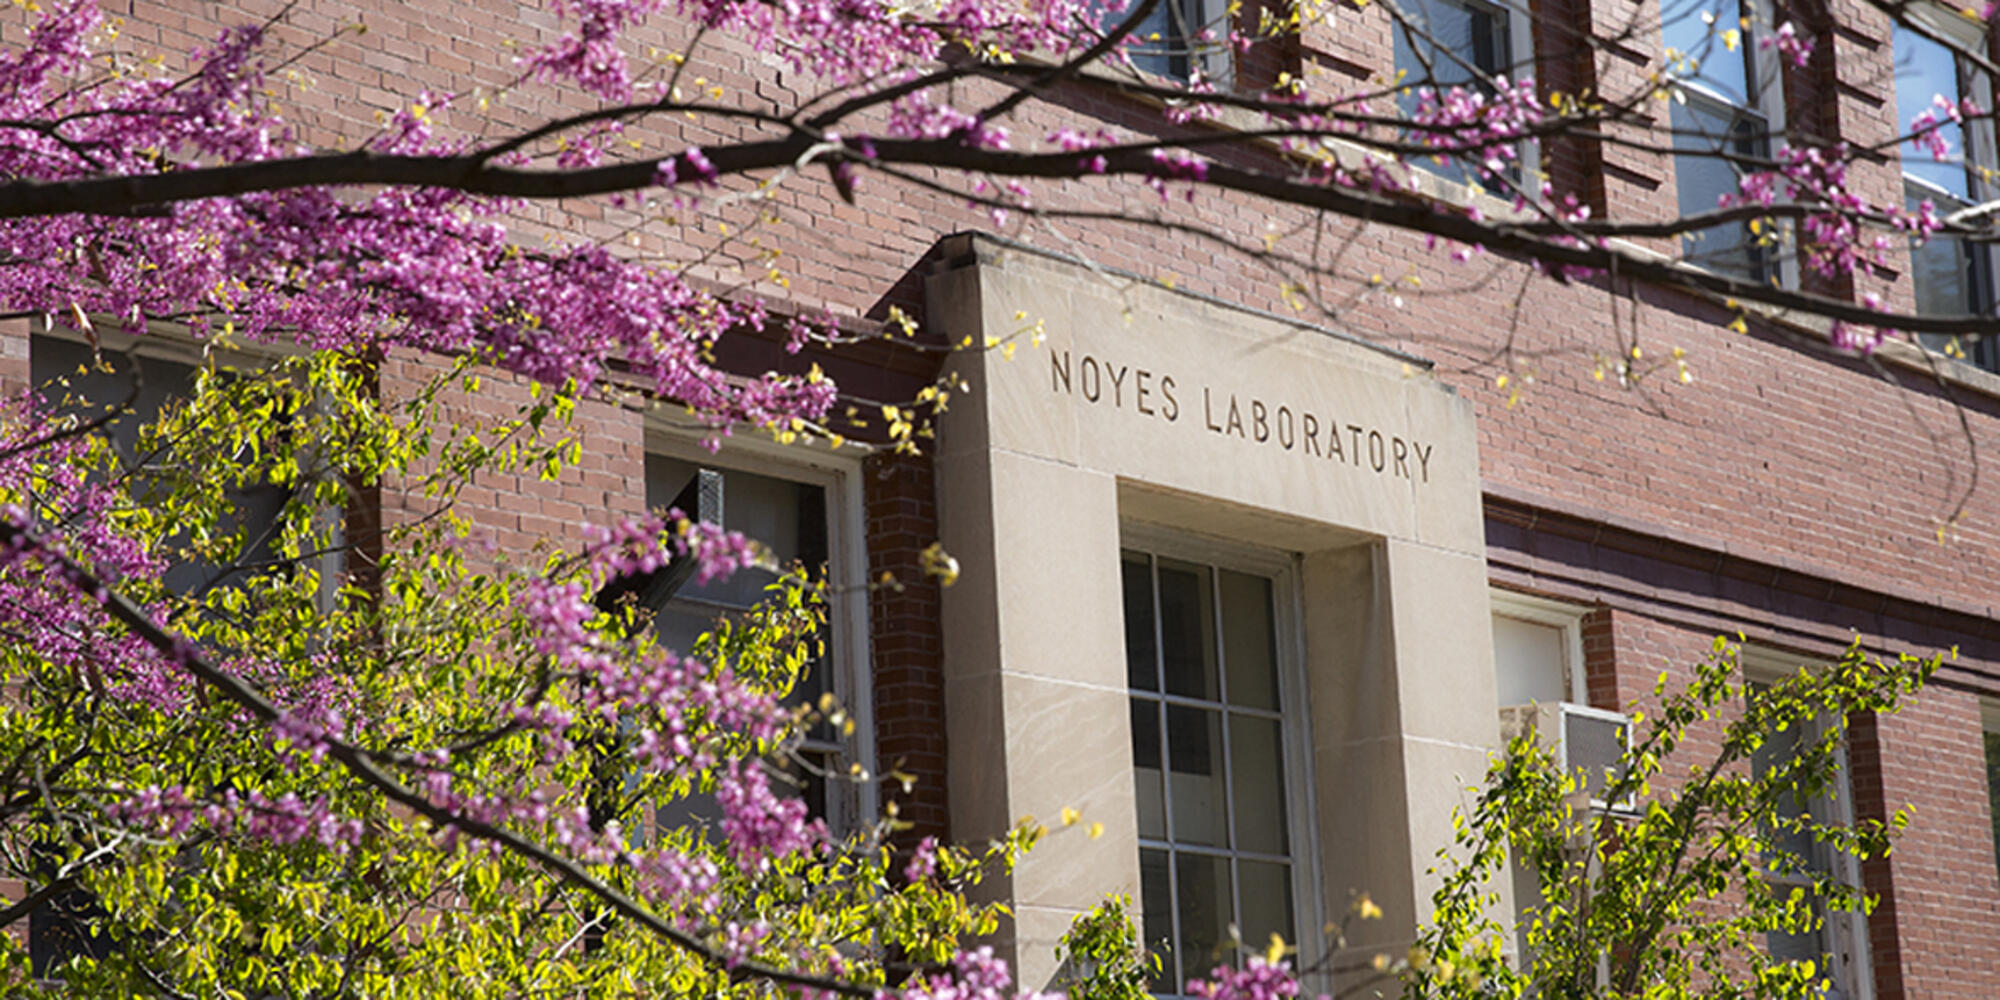 Spring photo of the Southwest entrance to Noyes Laboratory with a tree, full of blooms, in the foreground.